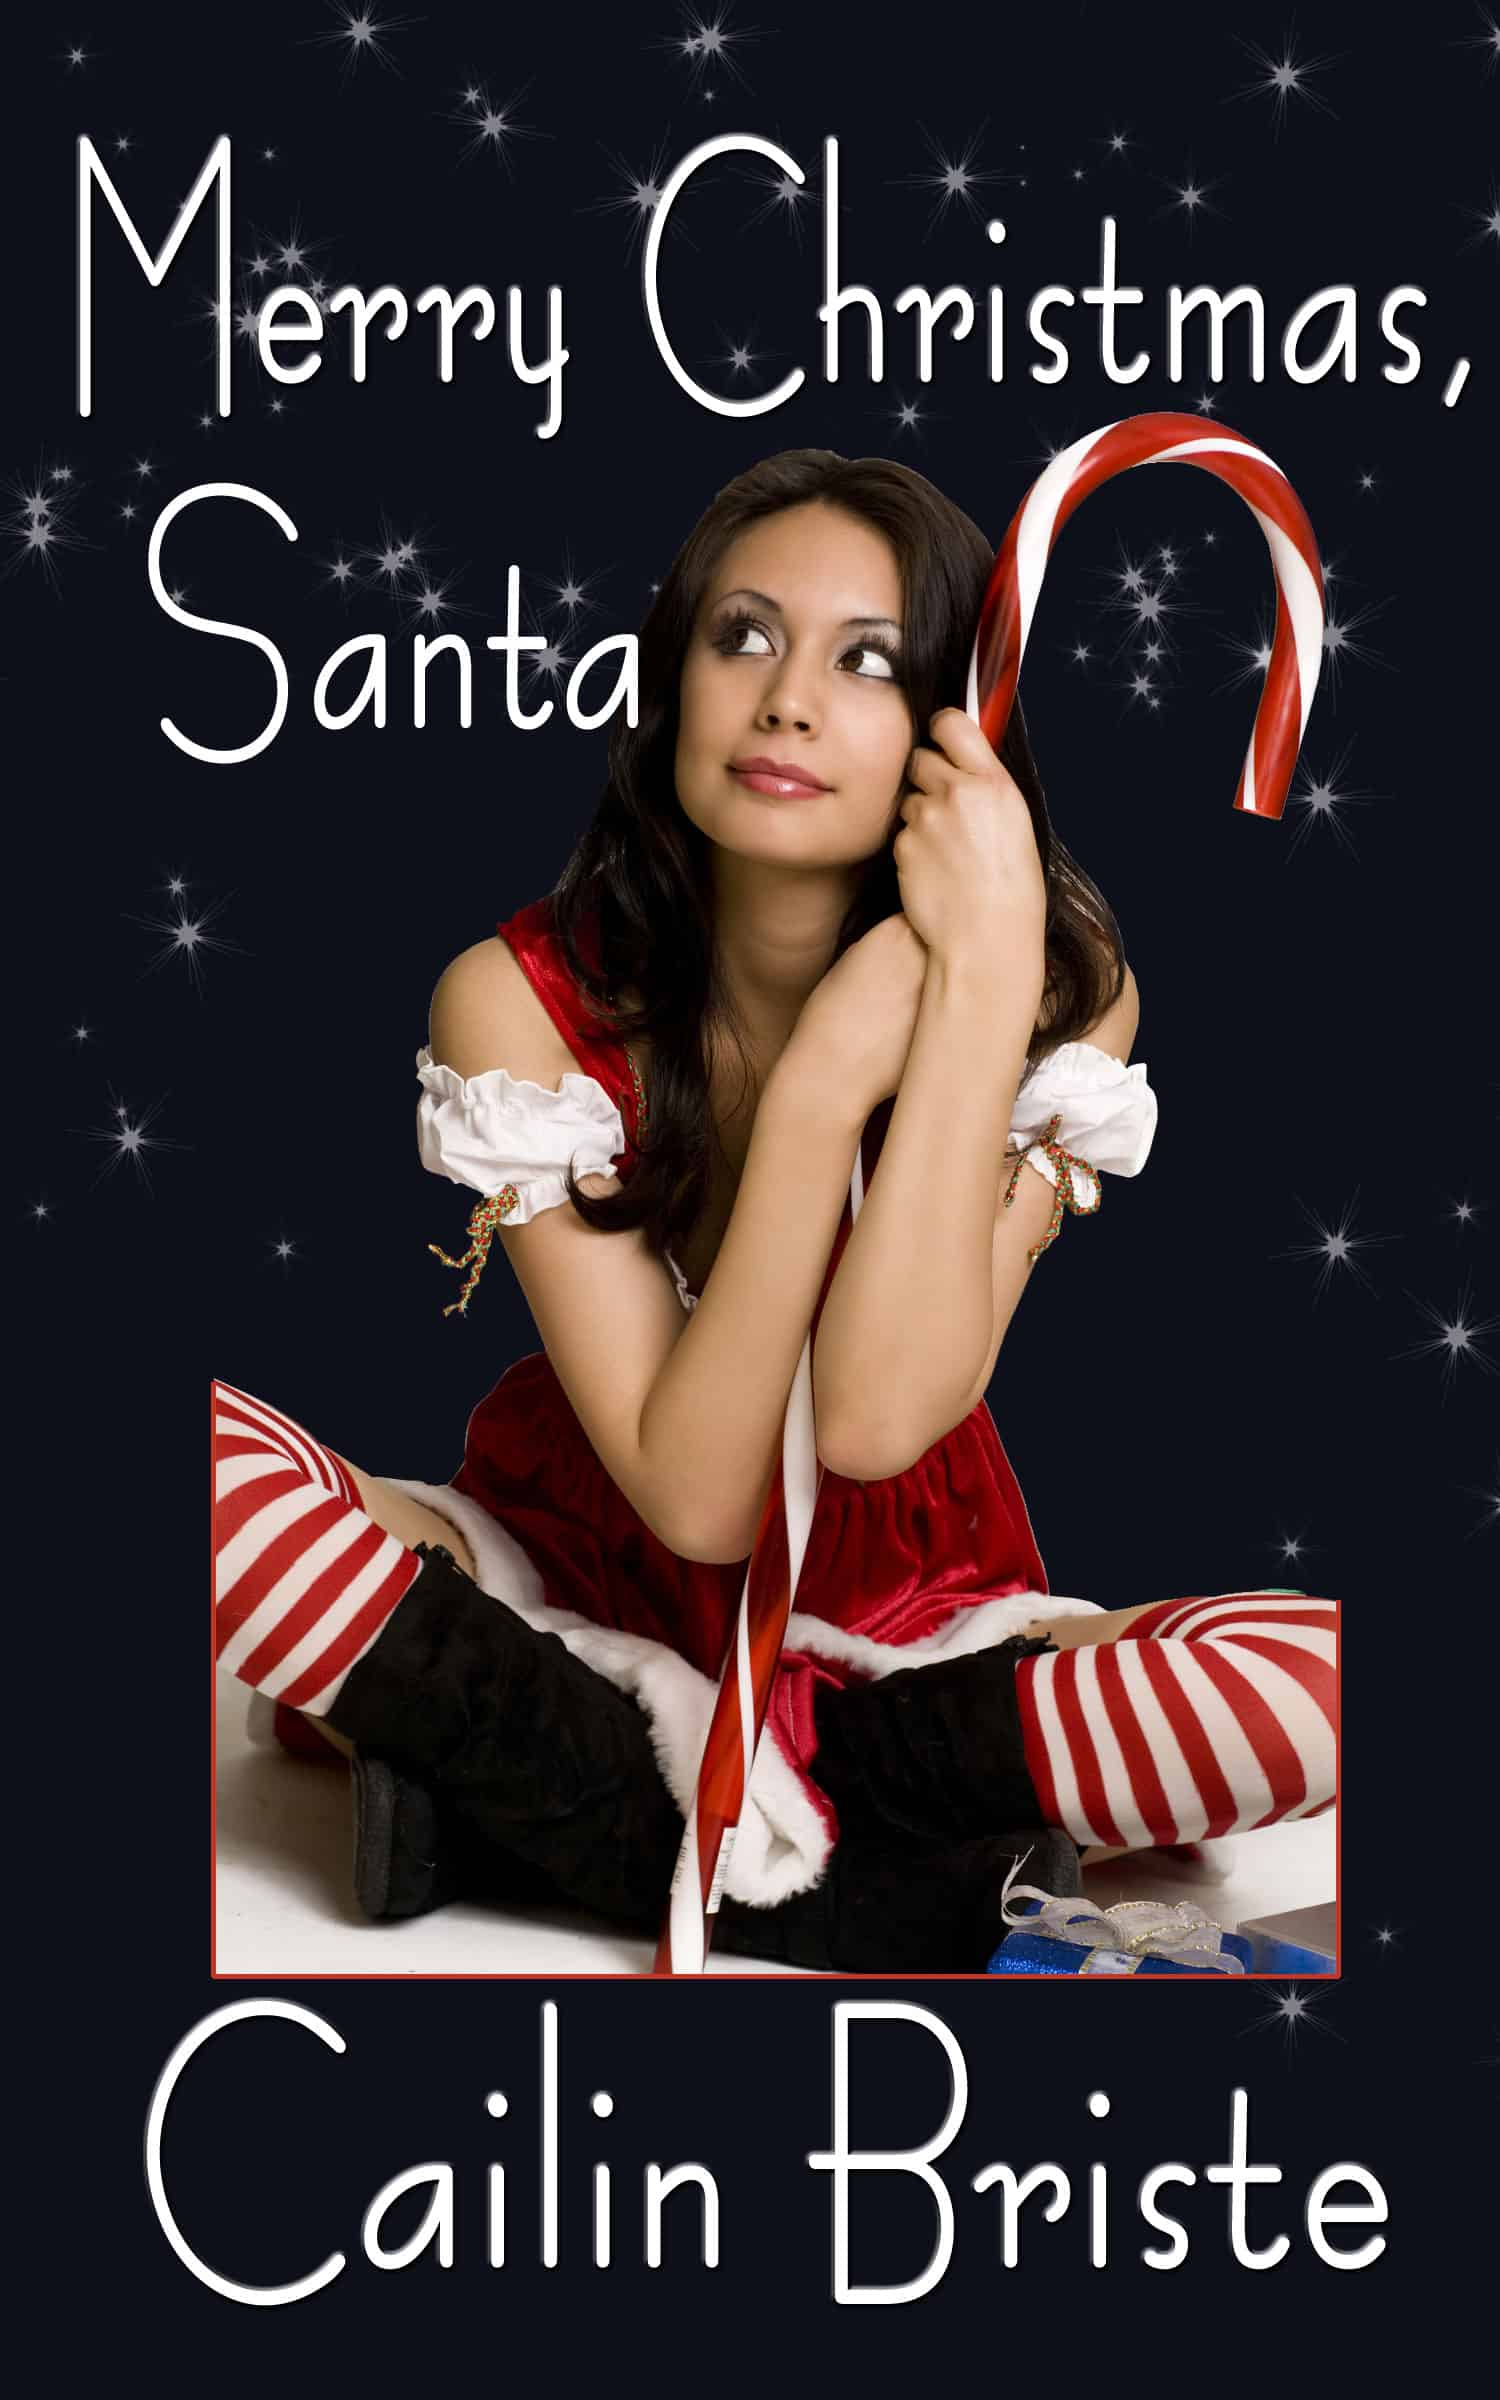 Automatically receive access to Merry Christmas, Santa and The Key, #BDSMromance short stories. #scifirom #MFRWauthor @RomWritersBB